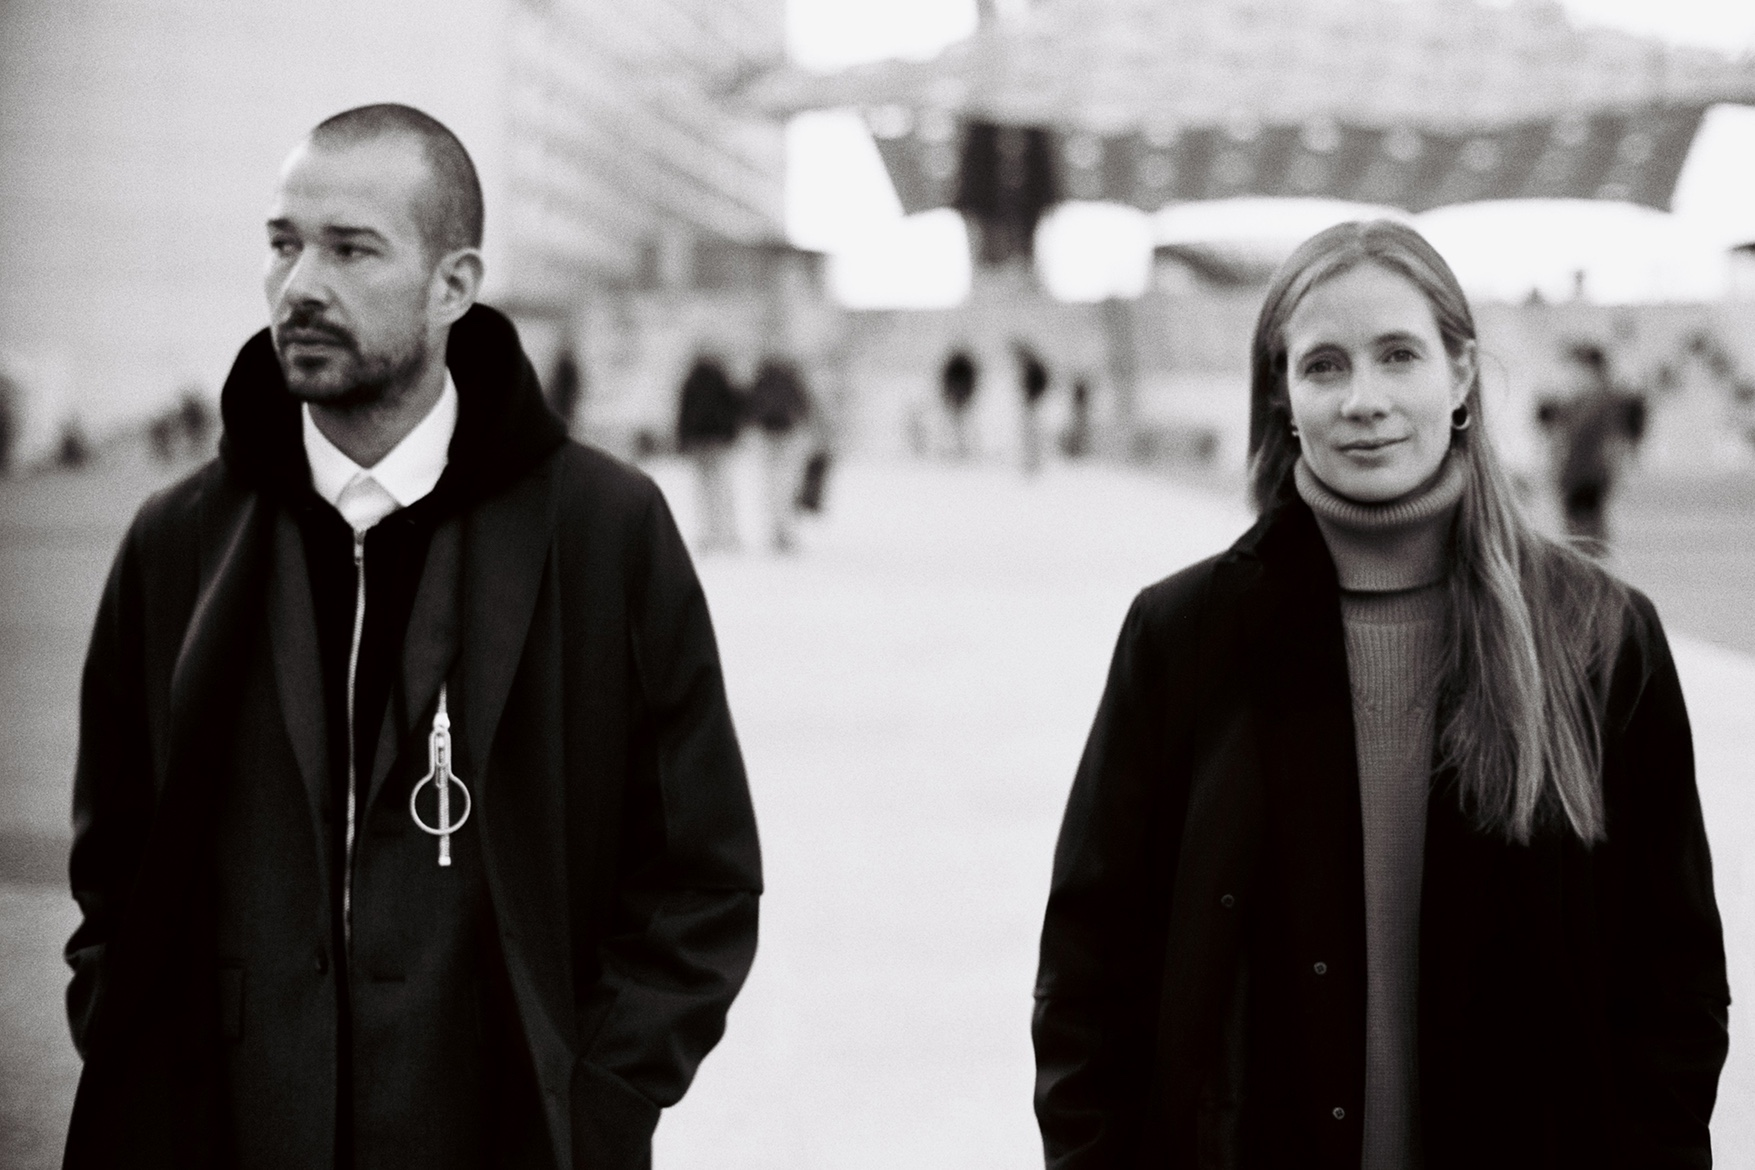 Jil Sander chose this power duo as their new creative directors